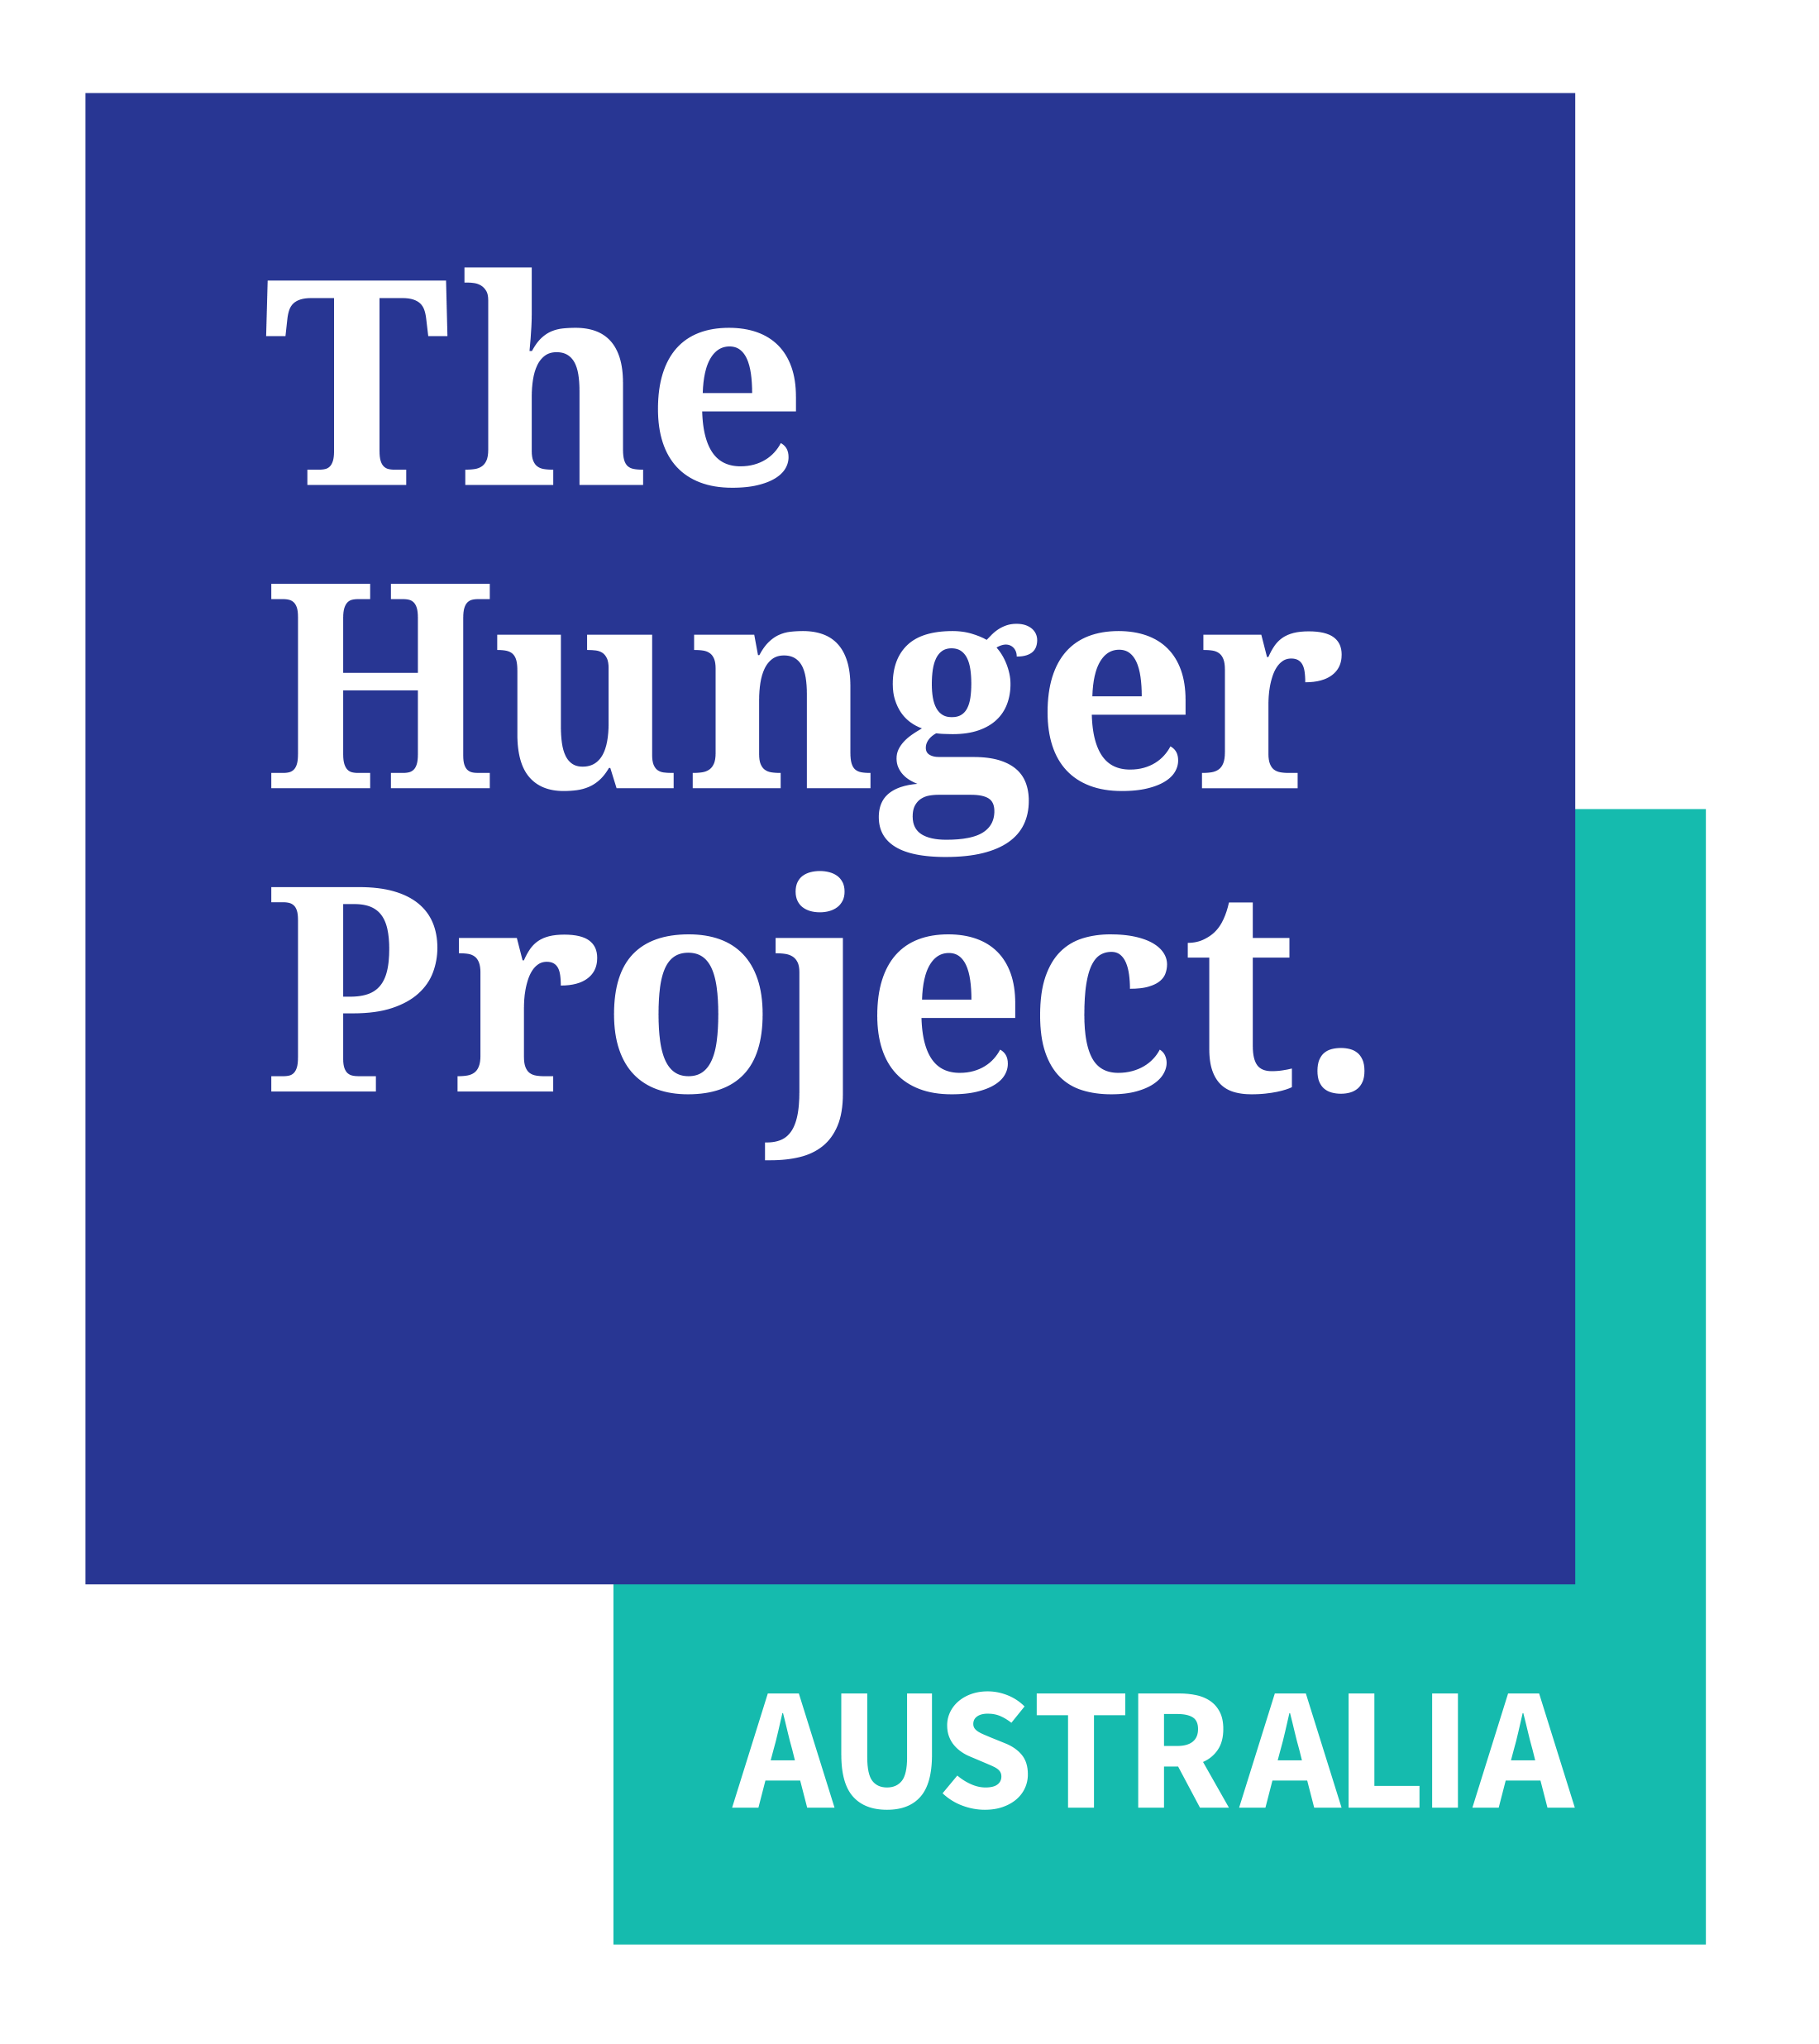 The Hunger Project Australia